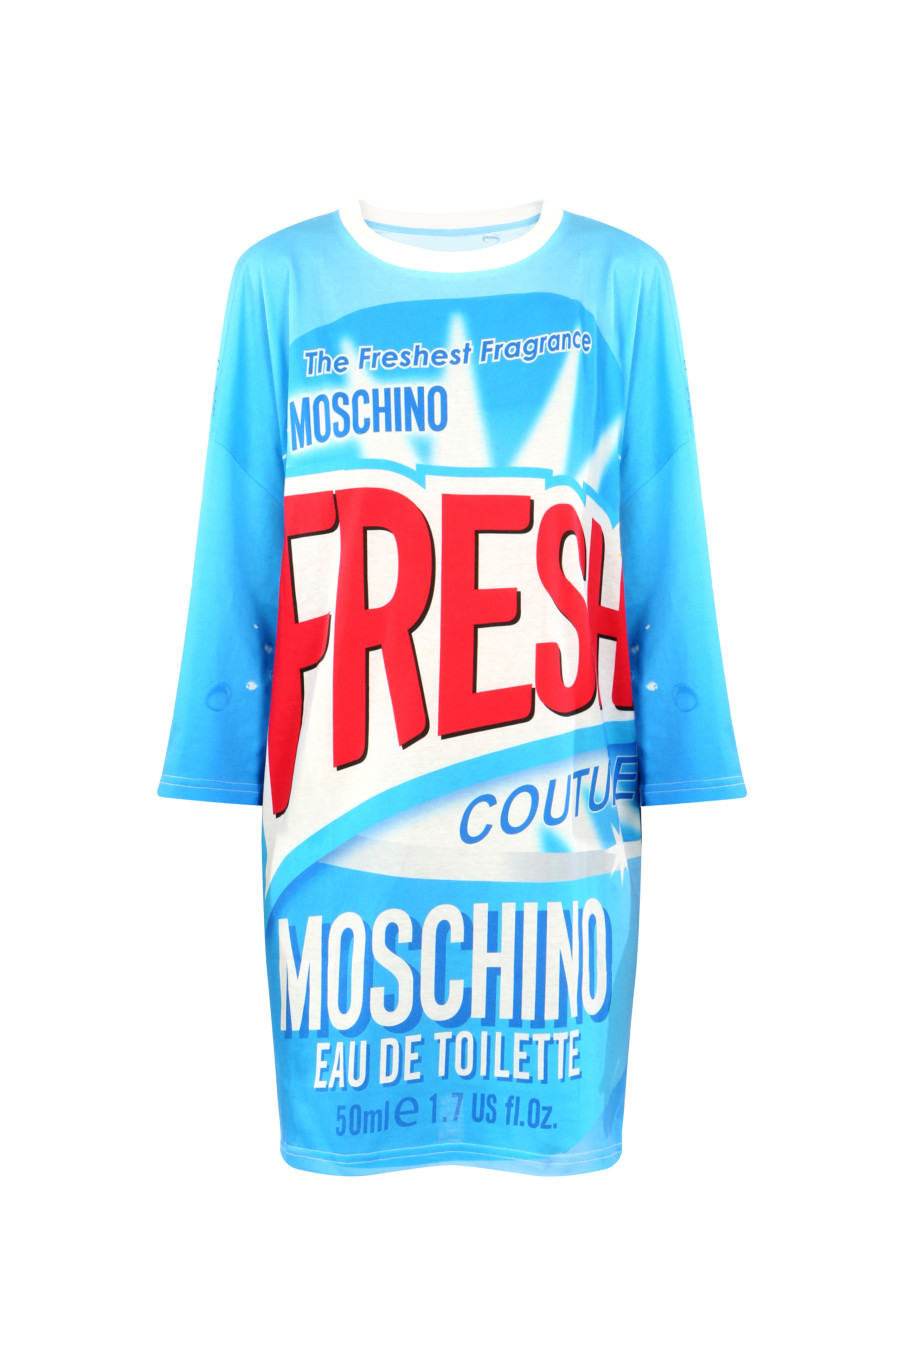 04 - MOSCHINO CAPSULE COLLECTION SS16